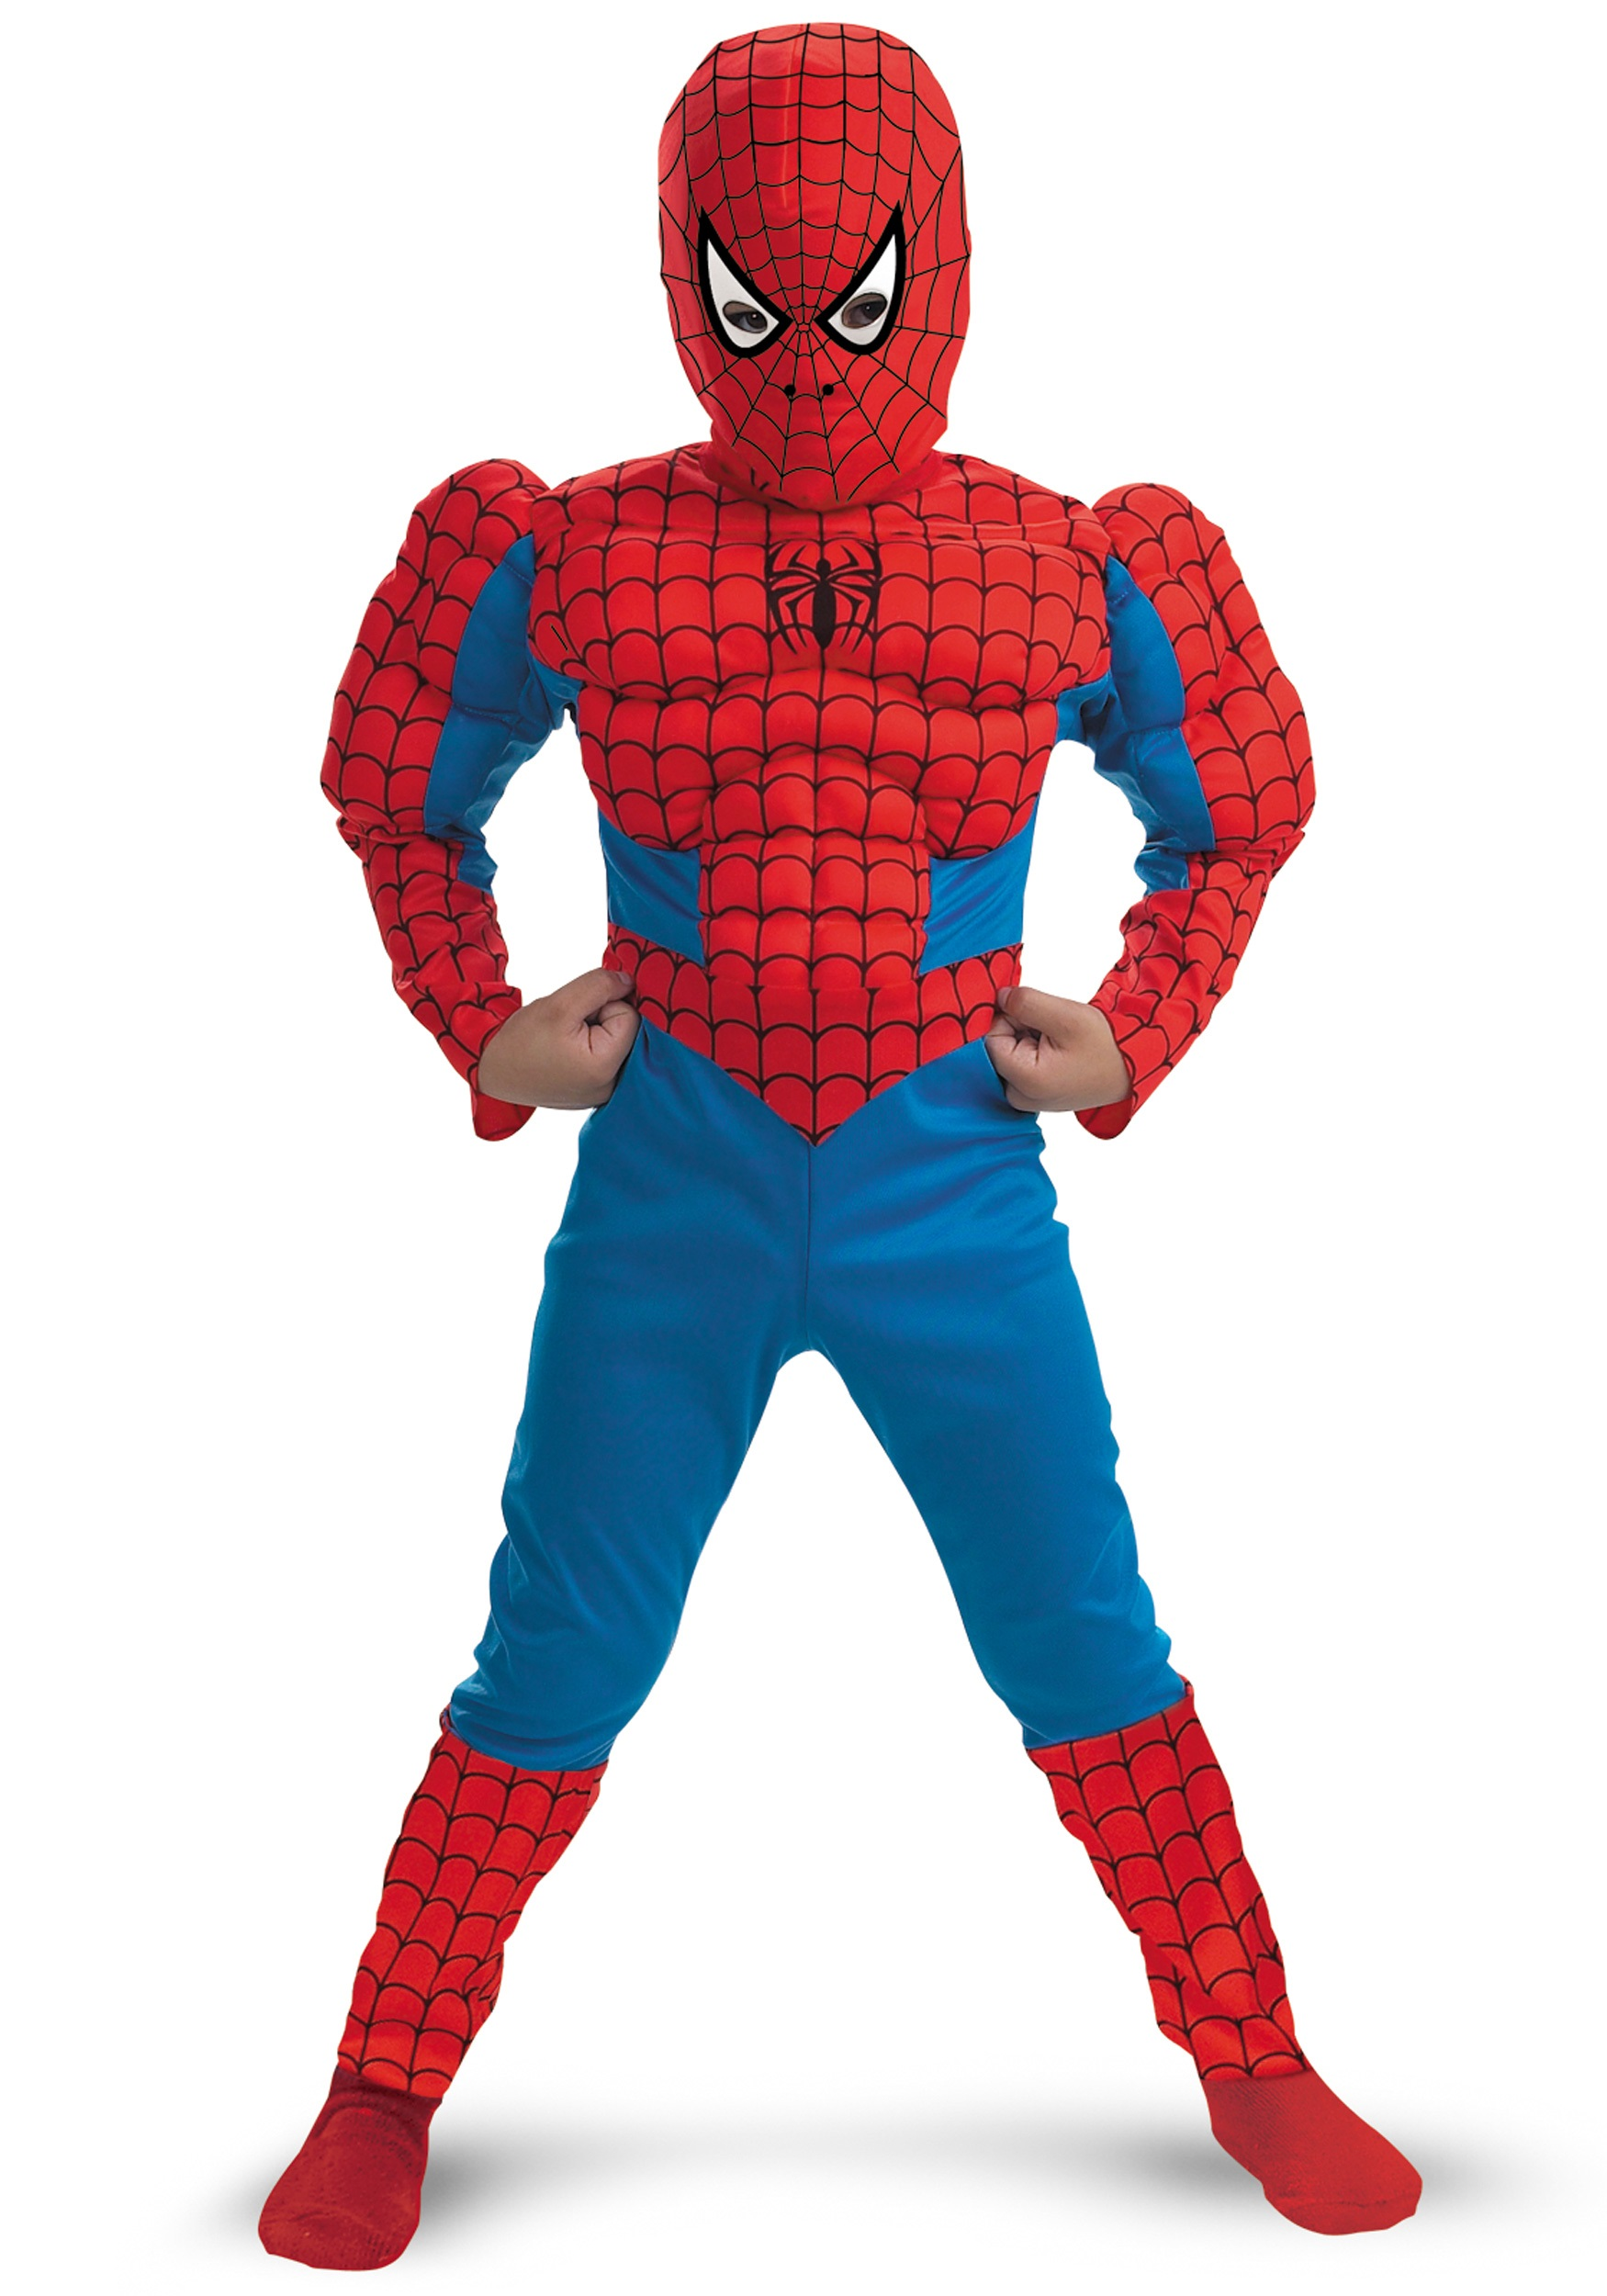 Kids Deluxe Muscle Spiderman Costume  sc 1 st  Halloween Costumes & Kids Deluxe Muscle Spiderman Costume - Halloween Costumes